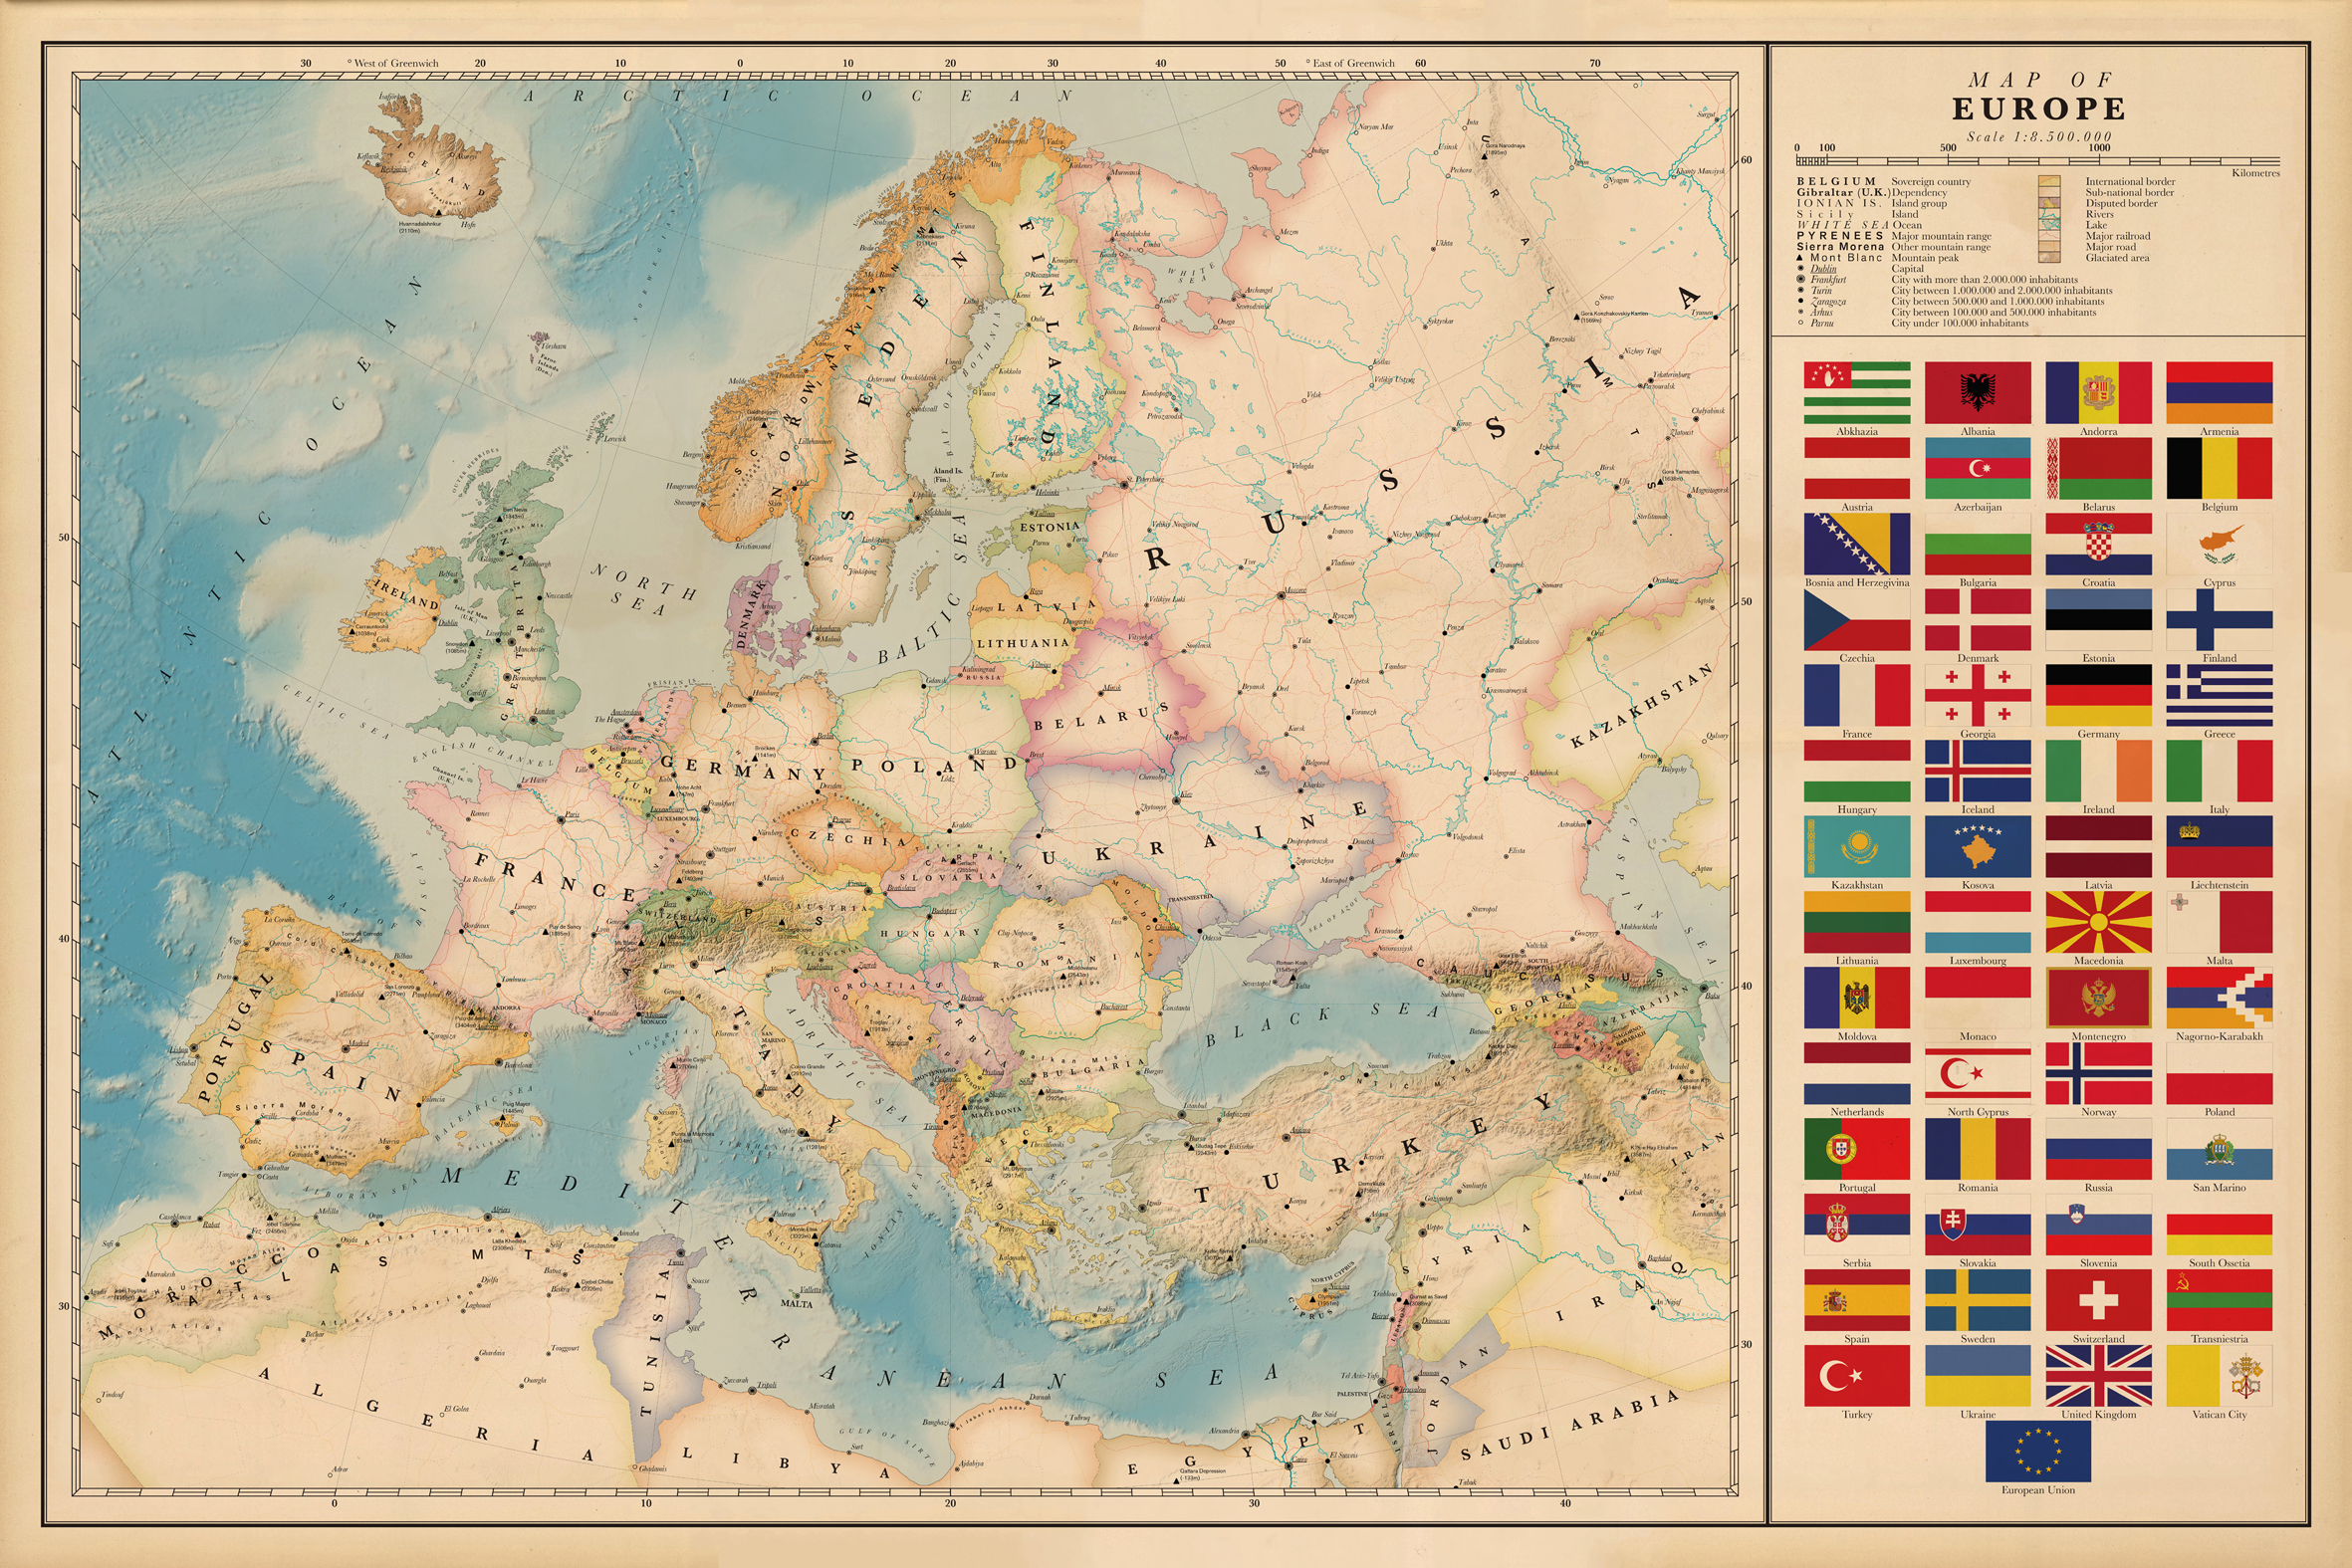 political map of europe with Gallery on A1 together with Lithuania as well Understanding The Bon s Rouges 1 further Geo Map Europe Denmark in addition Stock Image Eu Flag European Union Map Image36344251.